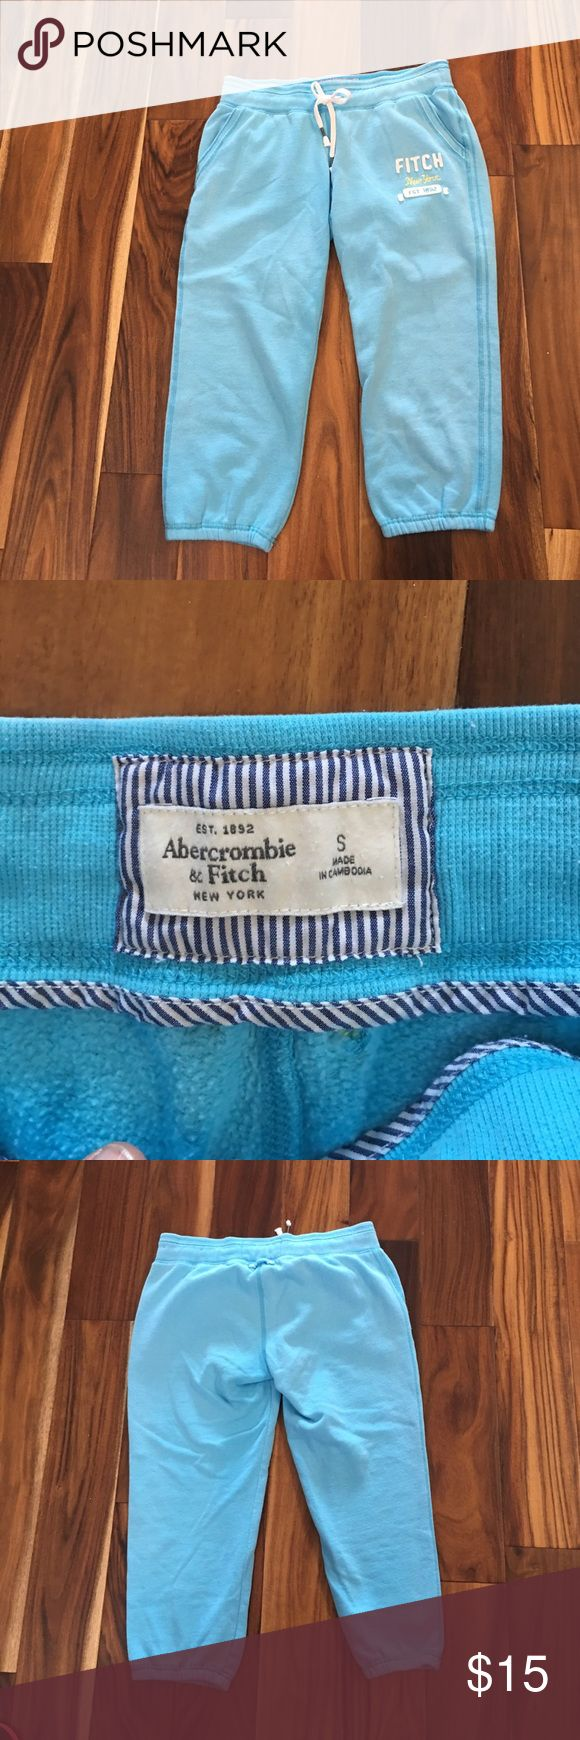 Abercrombie Fitch crop sweatpants Great condition no tears or stains Abercrombie & Fitch Pants